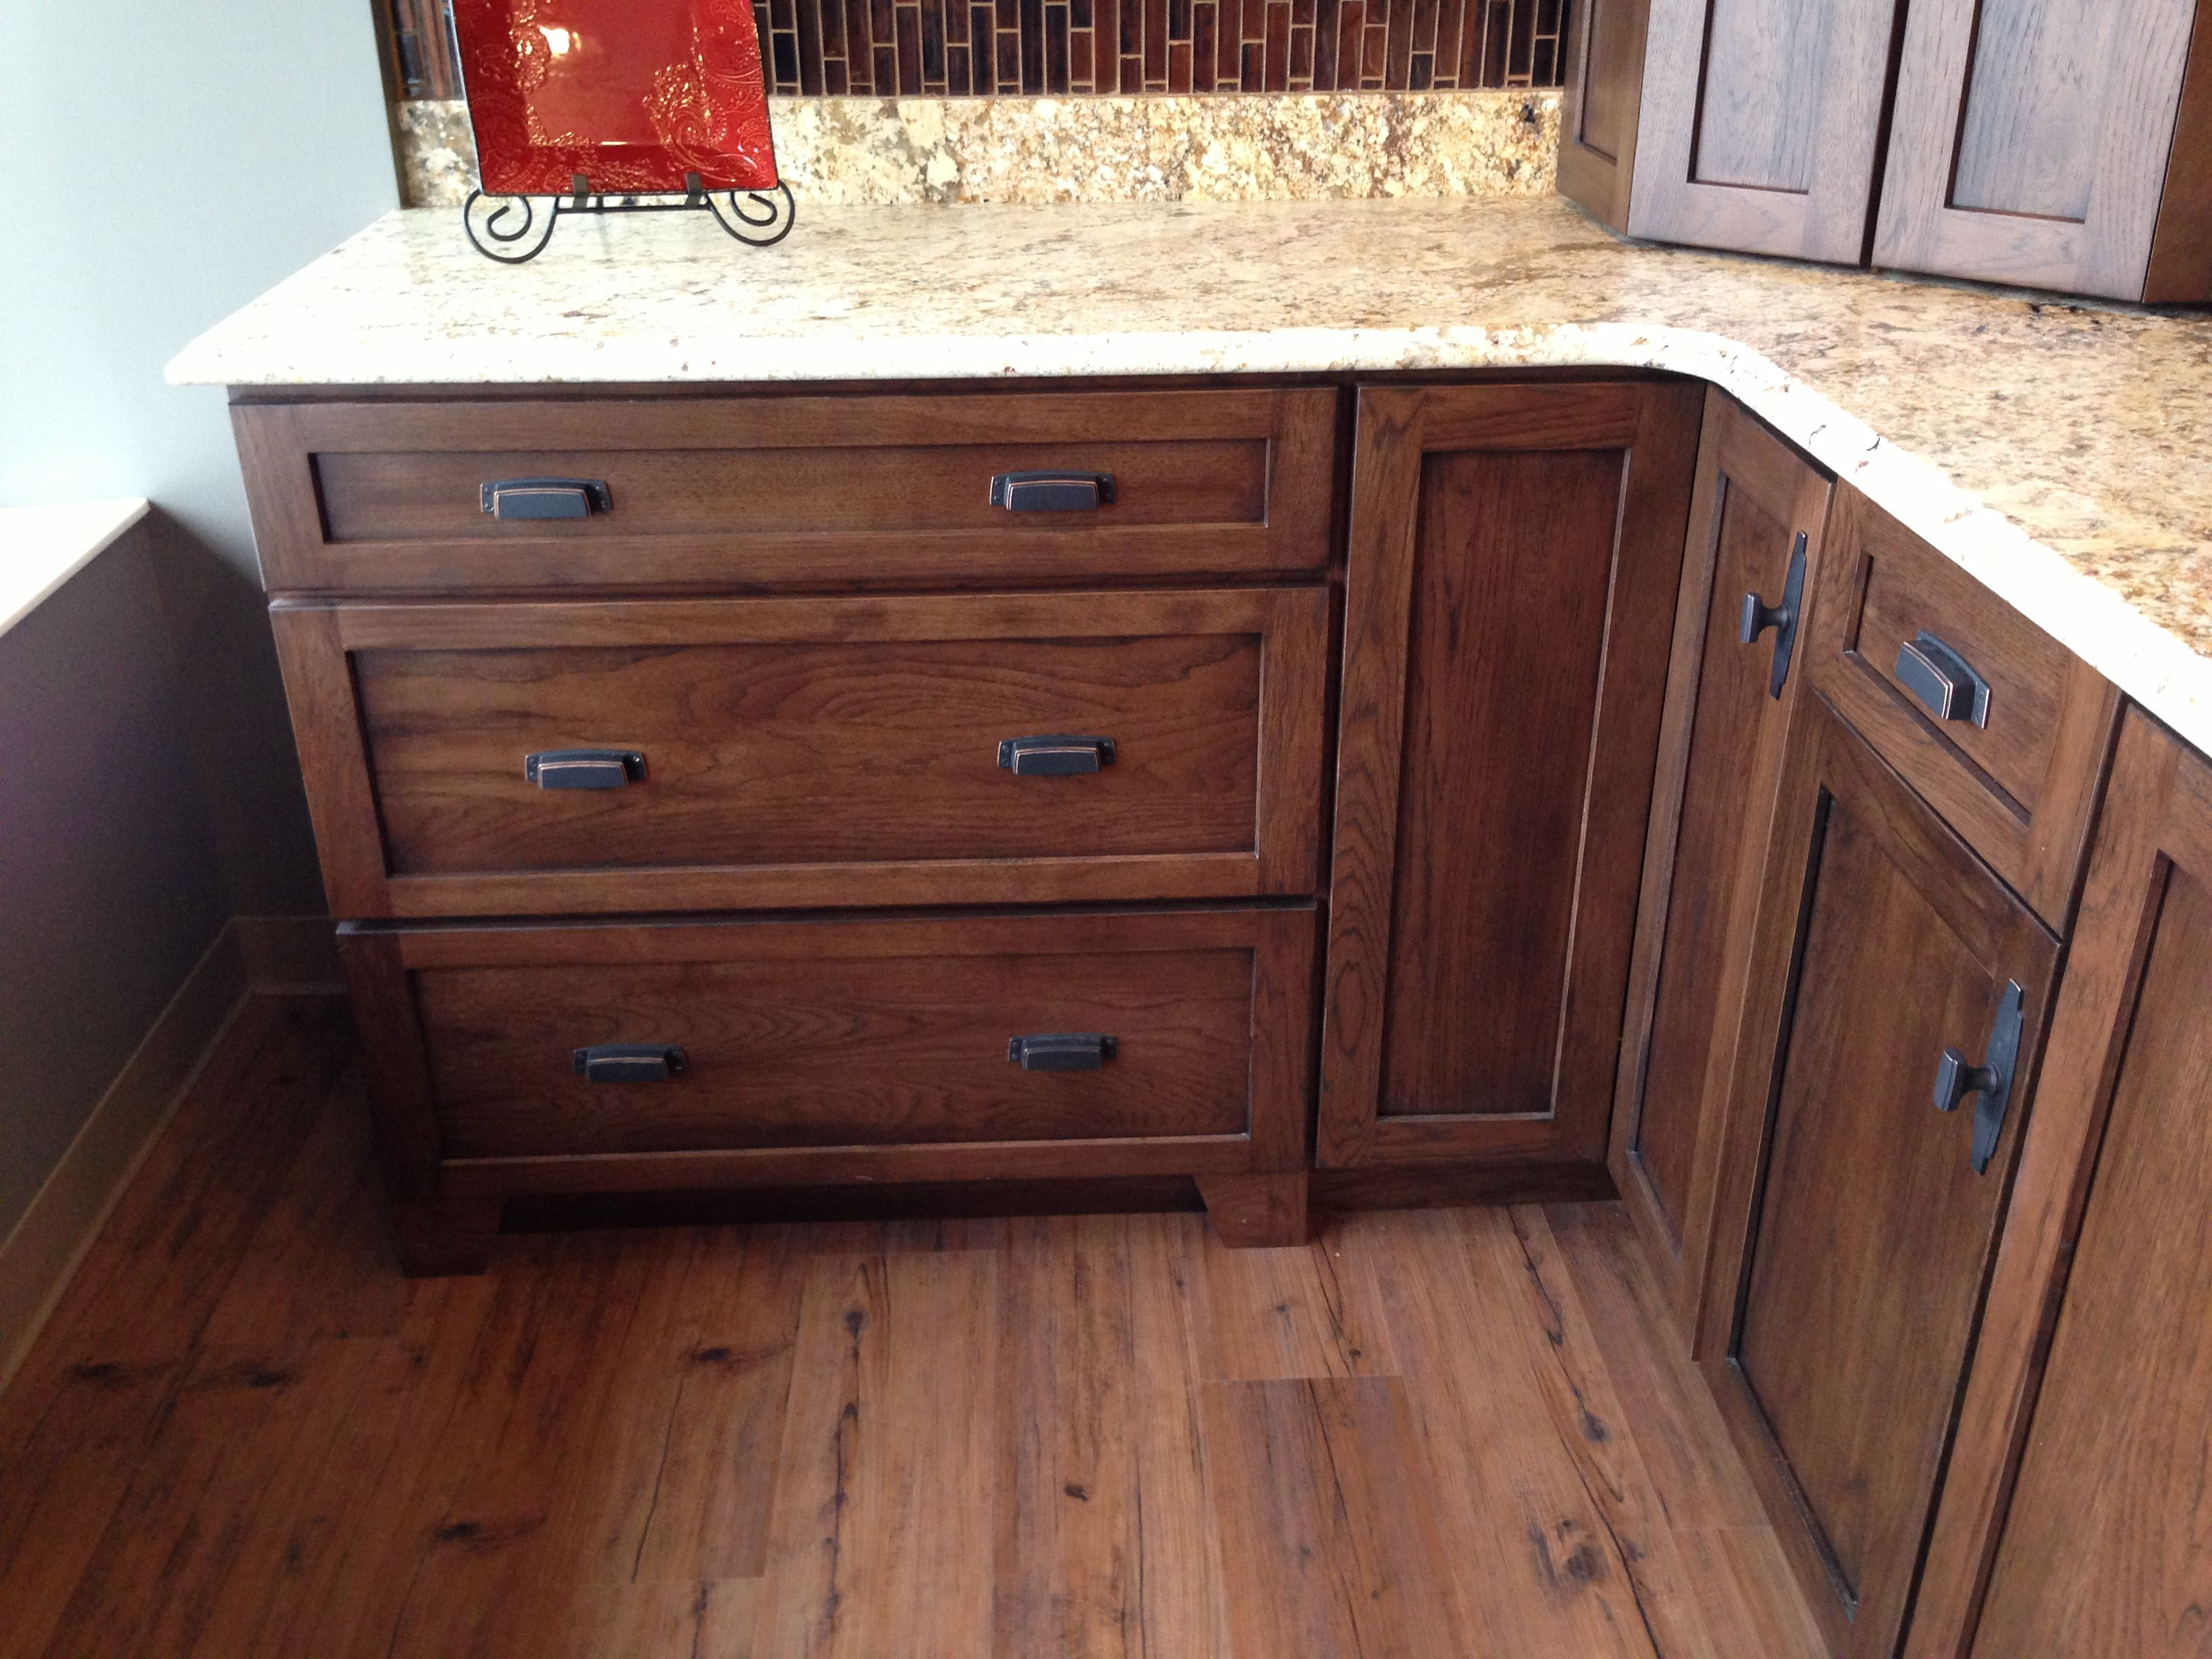 Farmhouse Style Kitchen Cabinets Have A Strong Rustic Appeal Rugged Elements And Materials In The Hickory Kitchen Cabinets New Kitchen Cabinets Rustic Kitchen